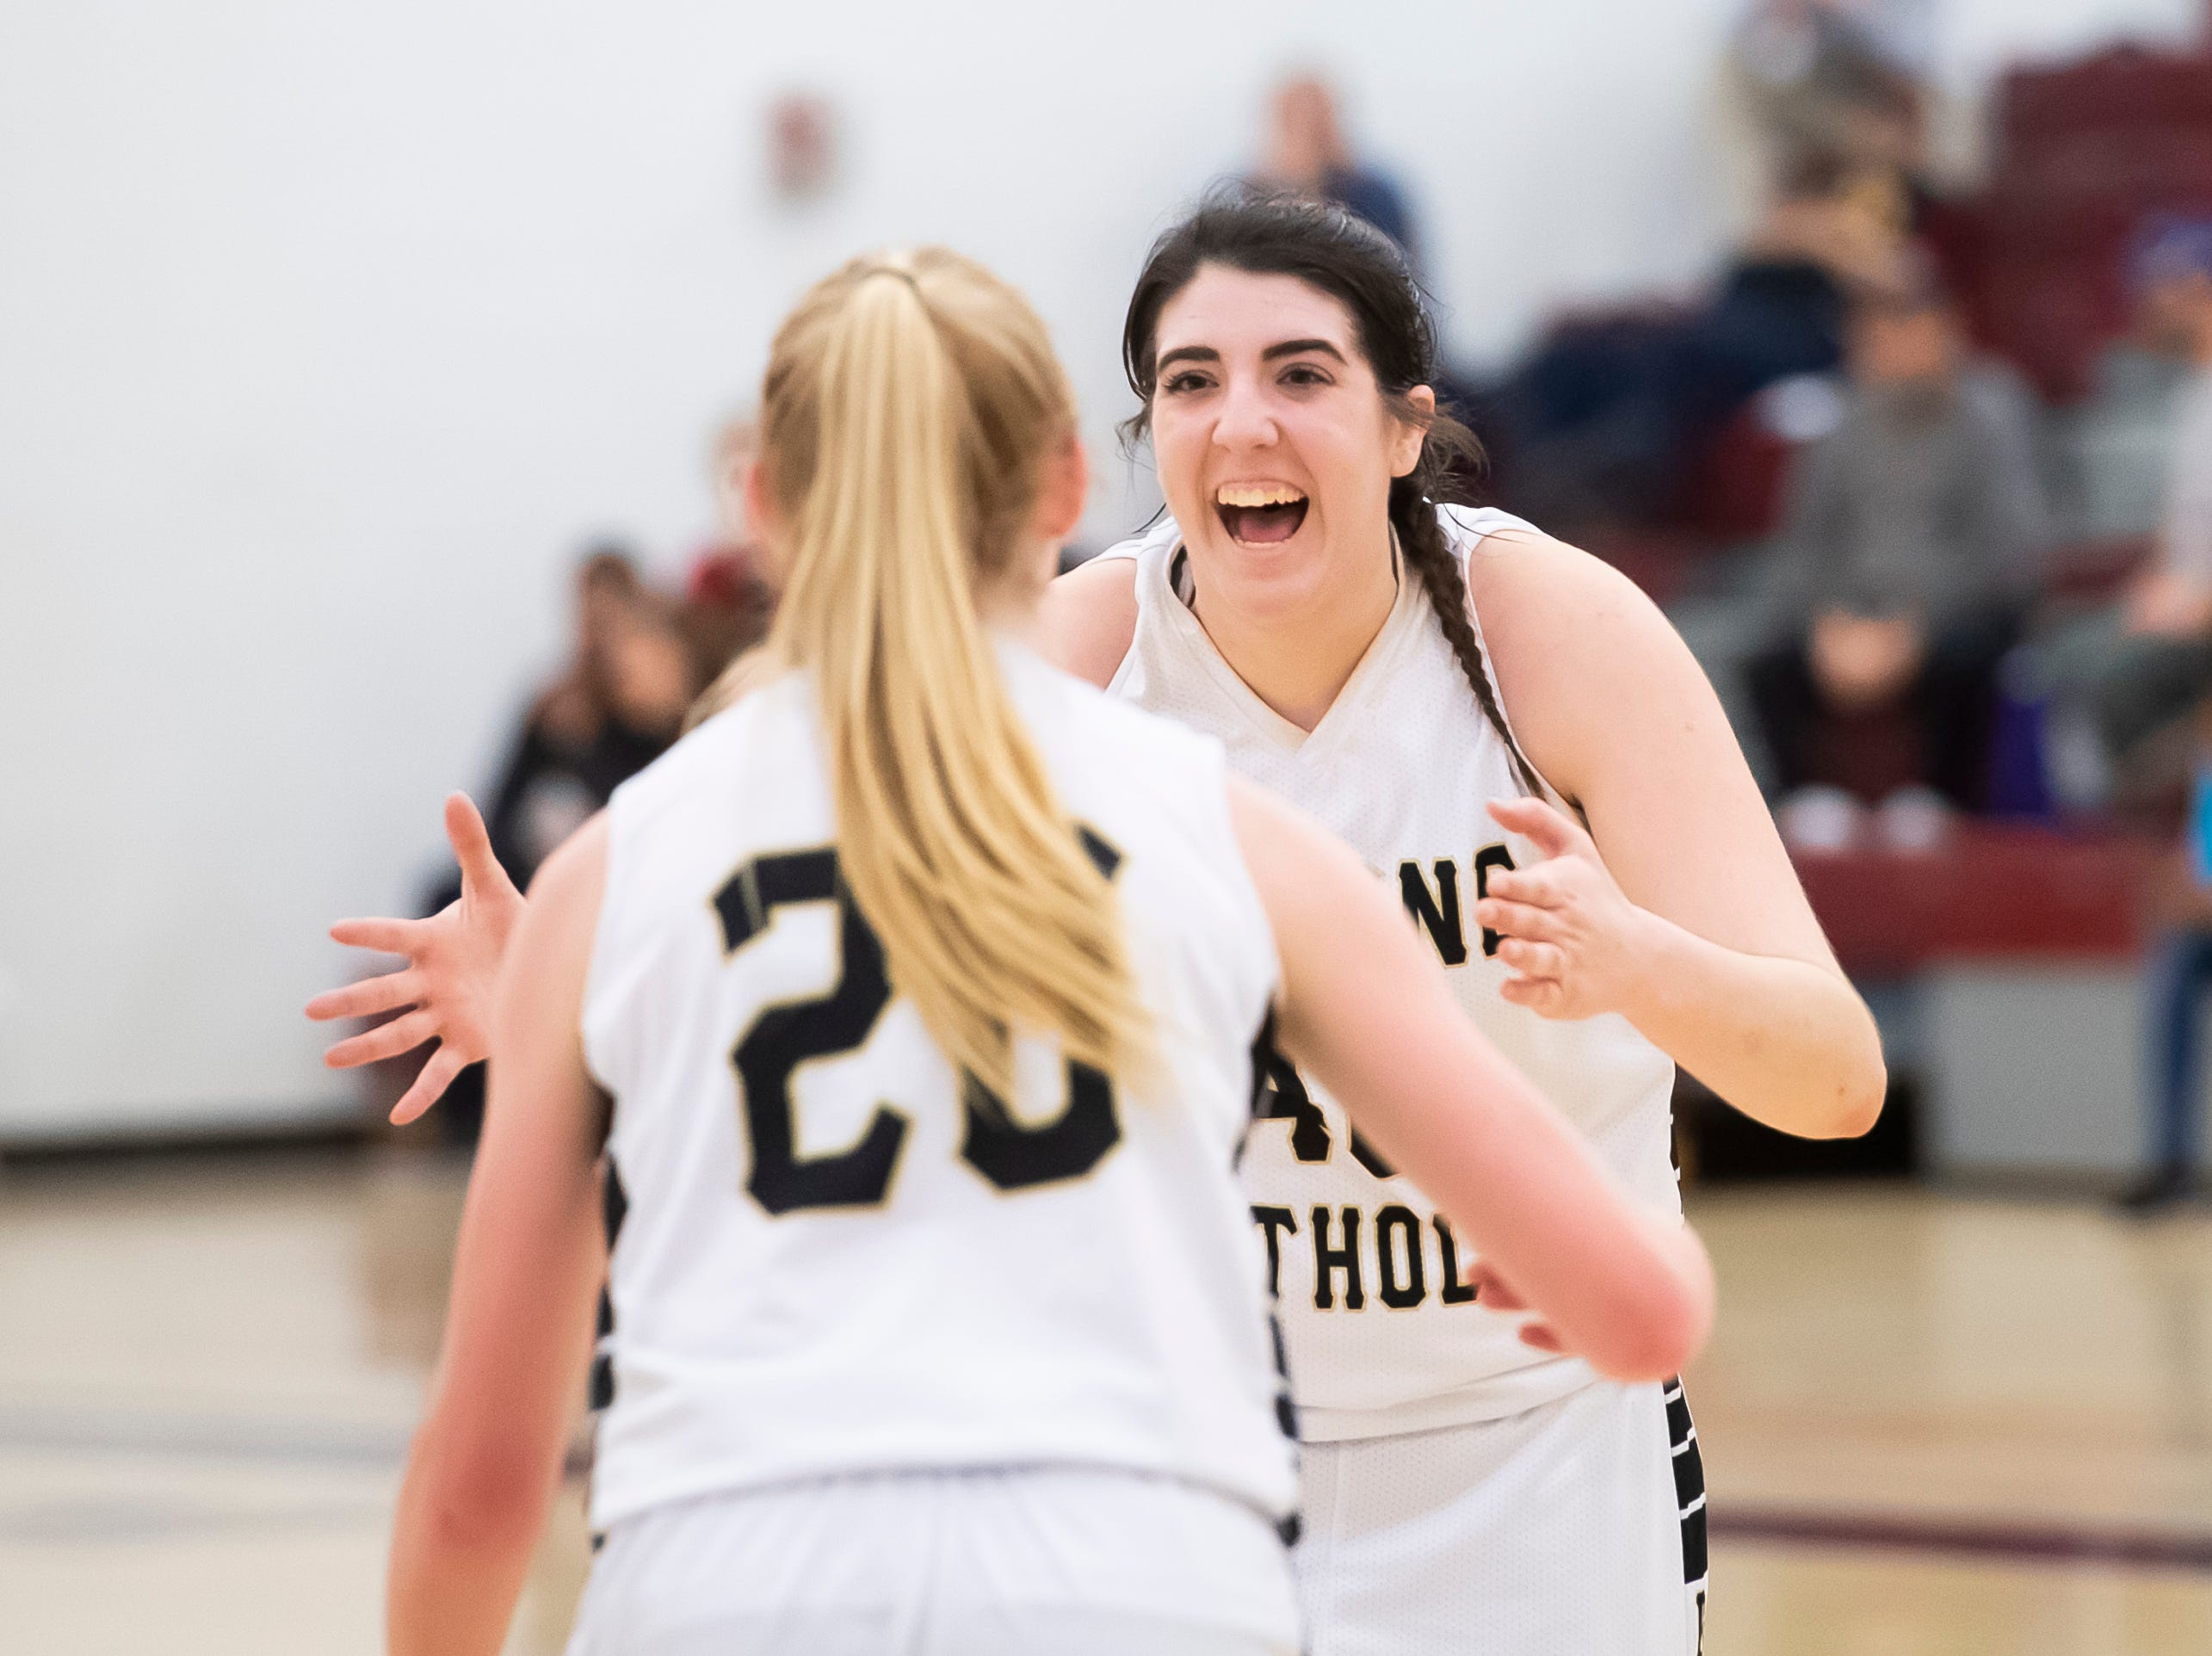 Delone Catholic's Bradi Zumbrum and Brooke Lawyer (20) celebrate after defeating Neshannock 50-41 during a PIAA 3A quarterfinal in Altoona on Friday, March 15, 2019. Zumbrum led all scorers with 16 points and reached the 1,000 career points mark.